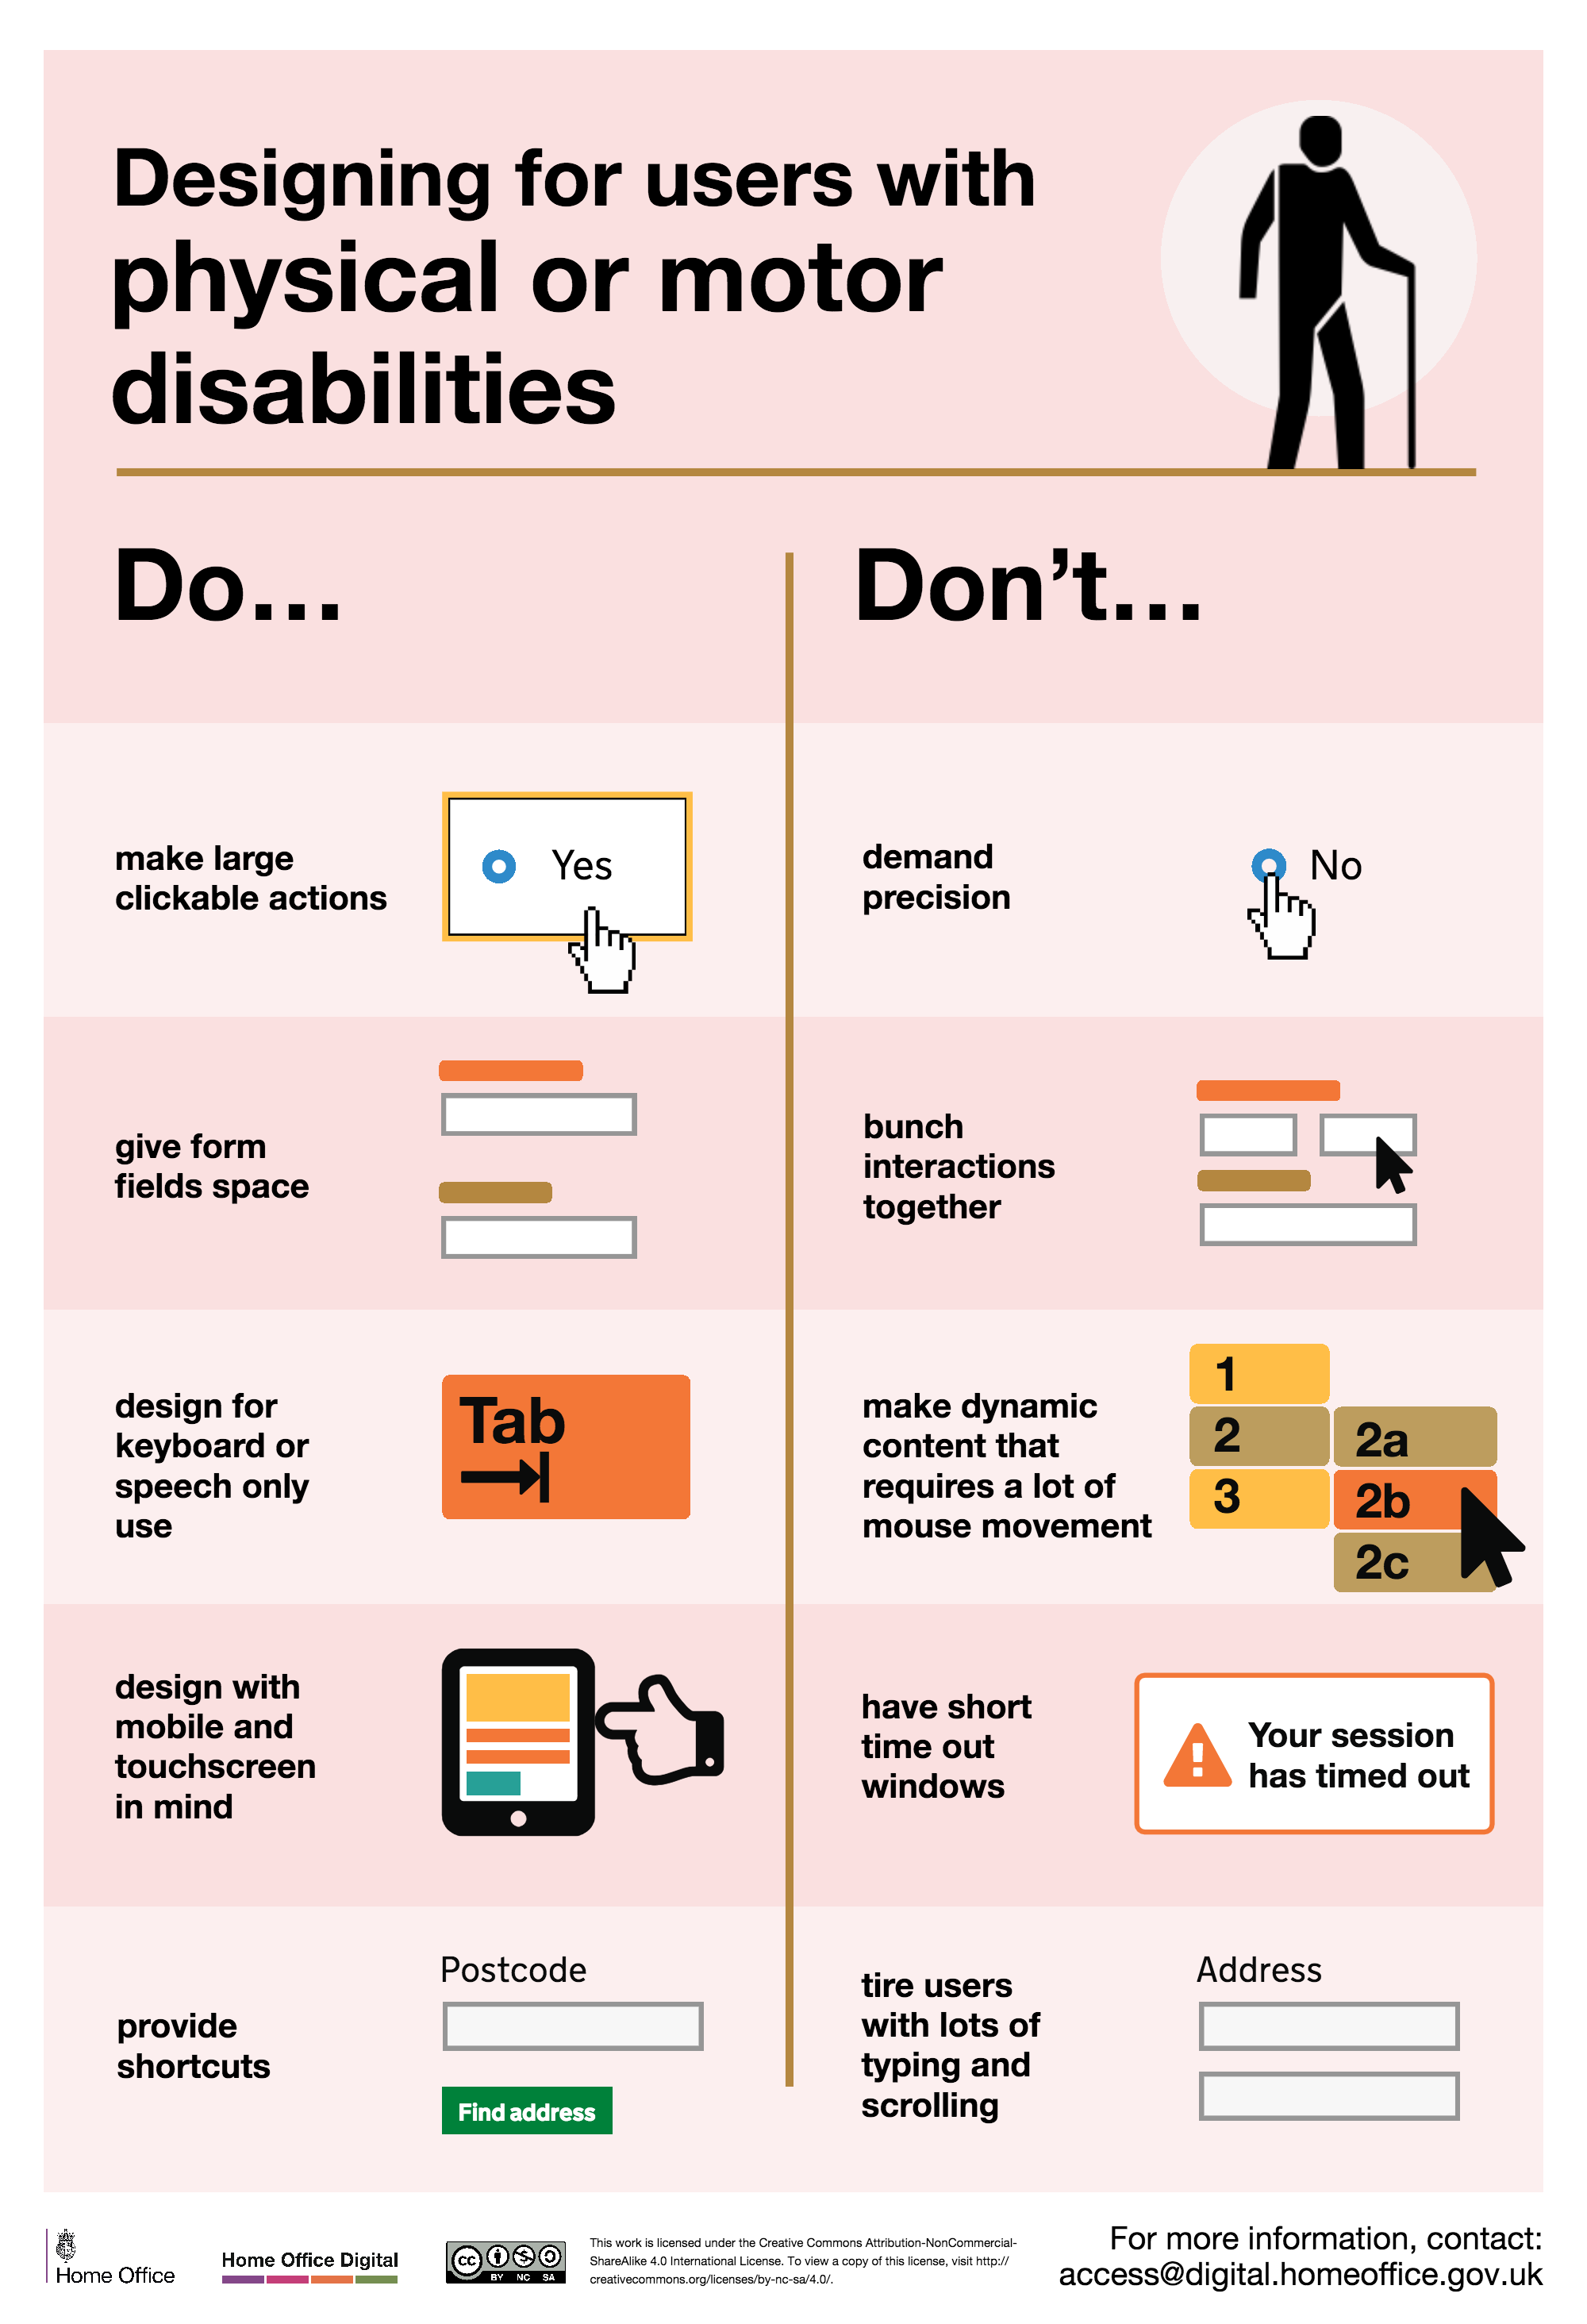 Designing for users with physical or motor disabilities. Poster by Karwai Pun. #accessibility #a11y